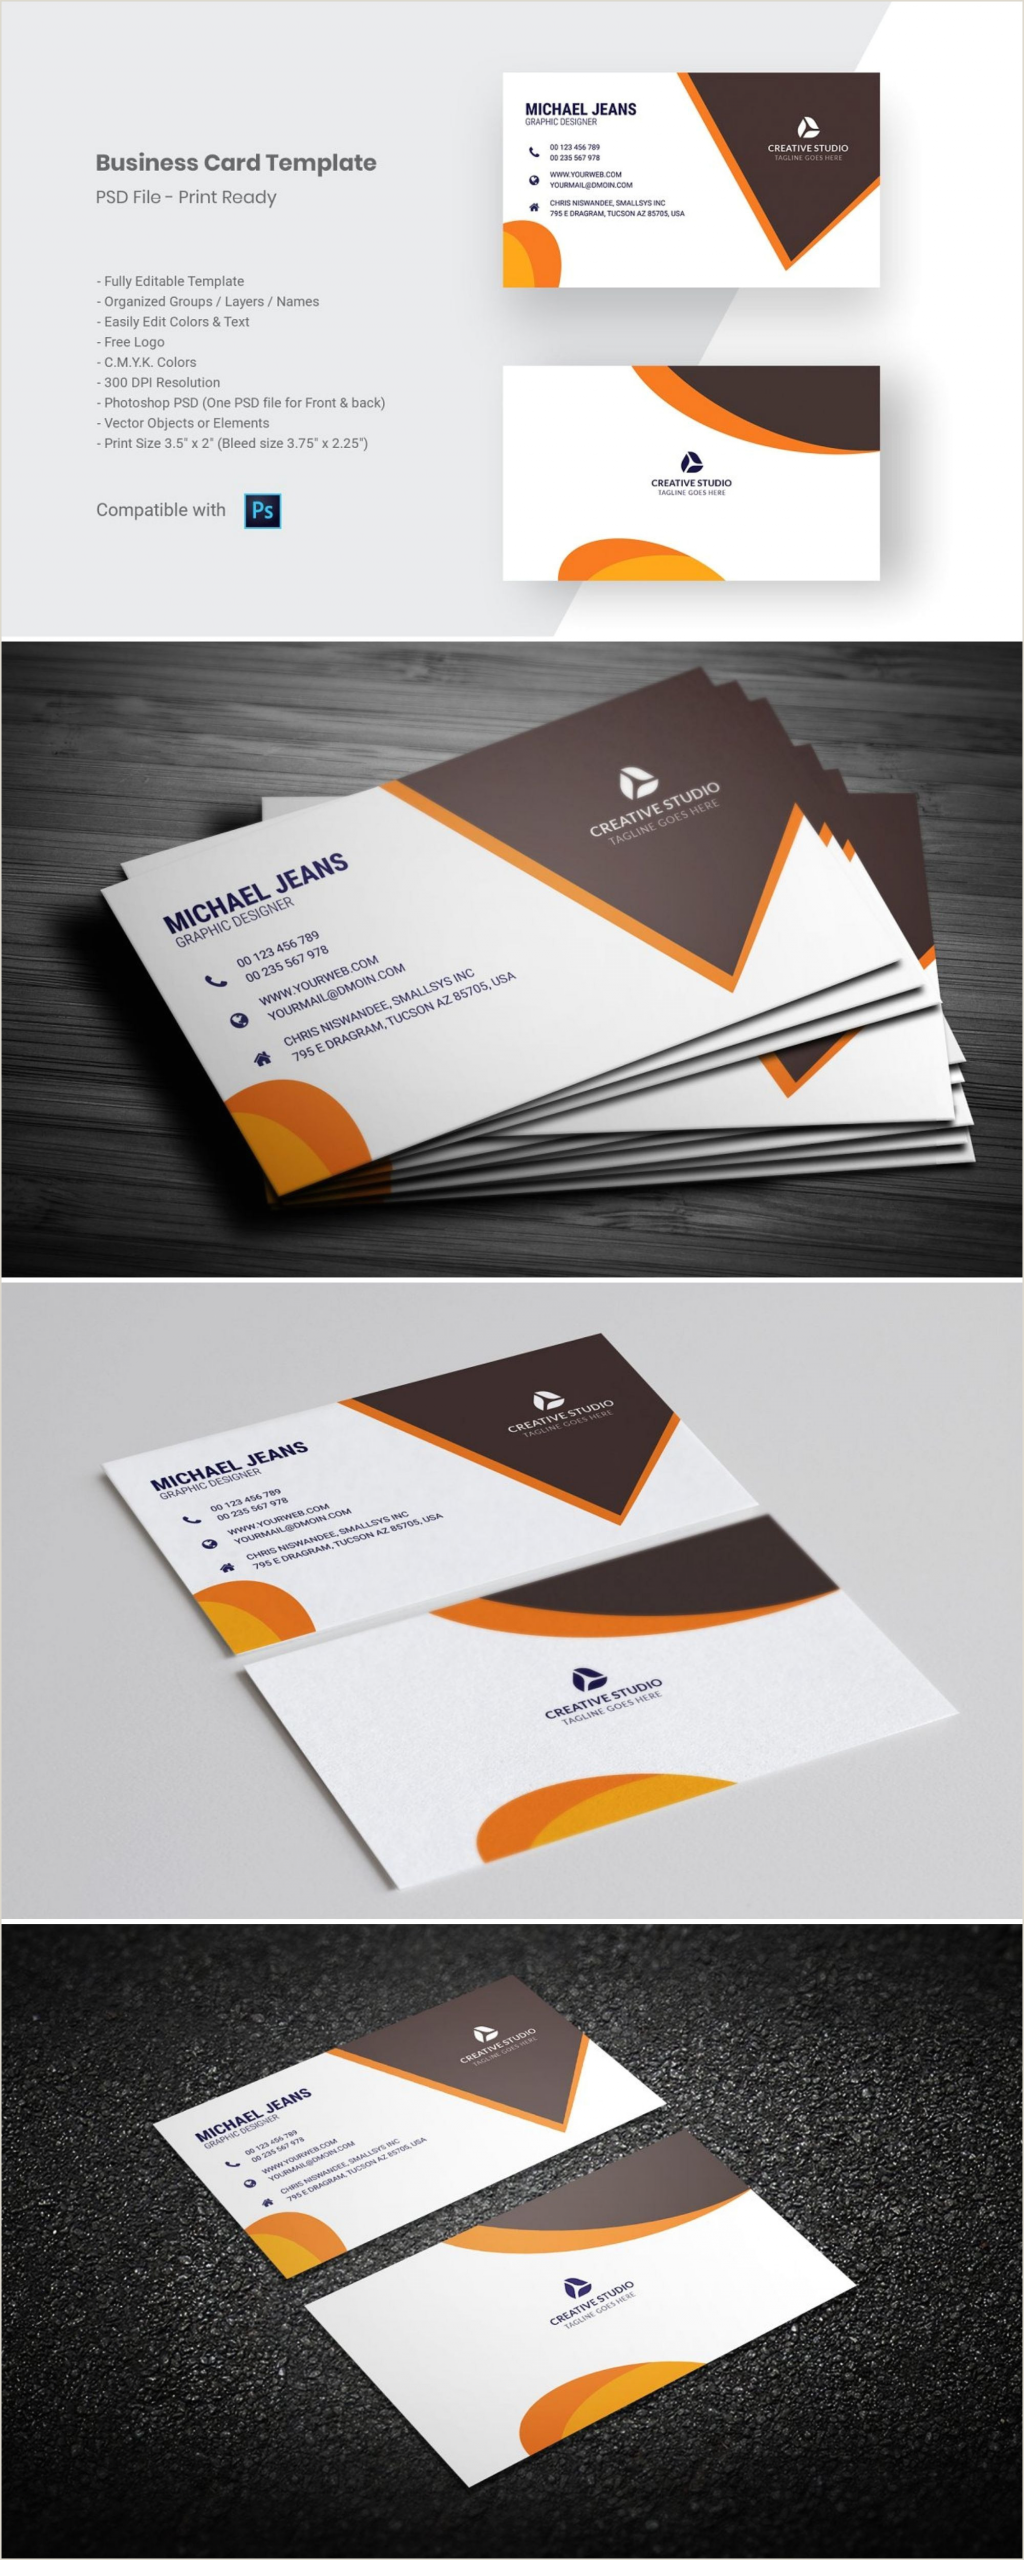 What To Include On A Personal Business Card Modern Business Card Template